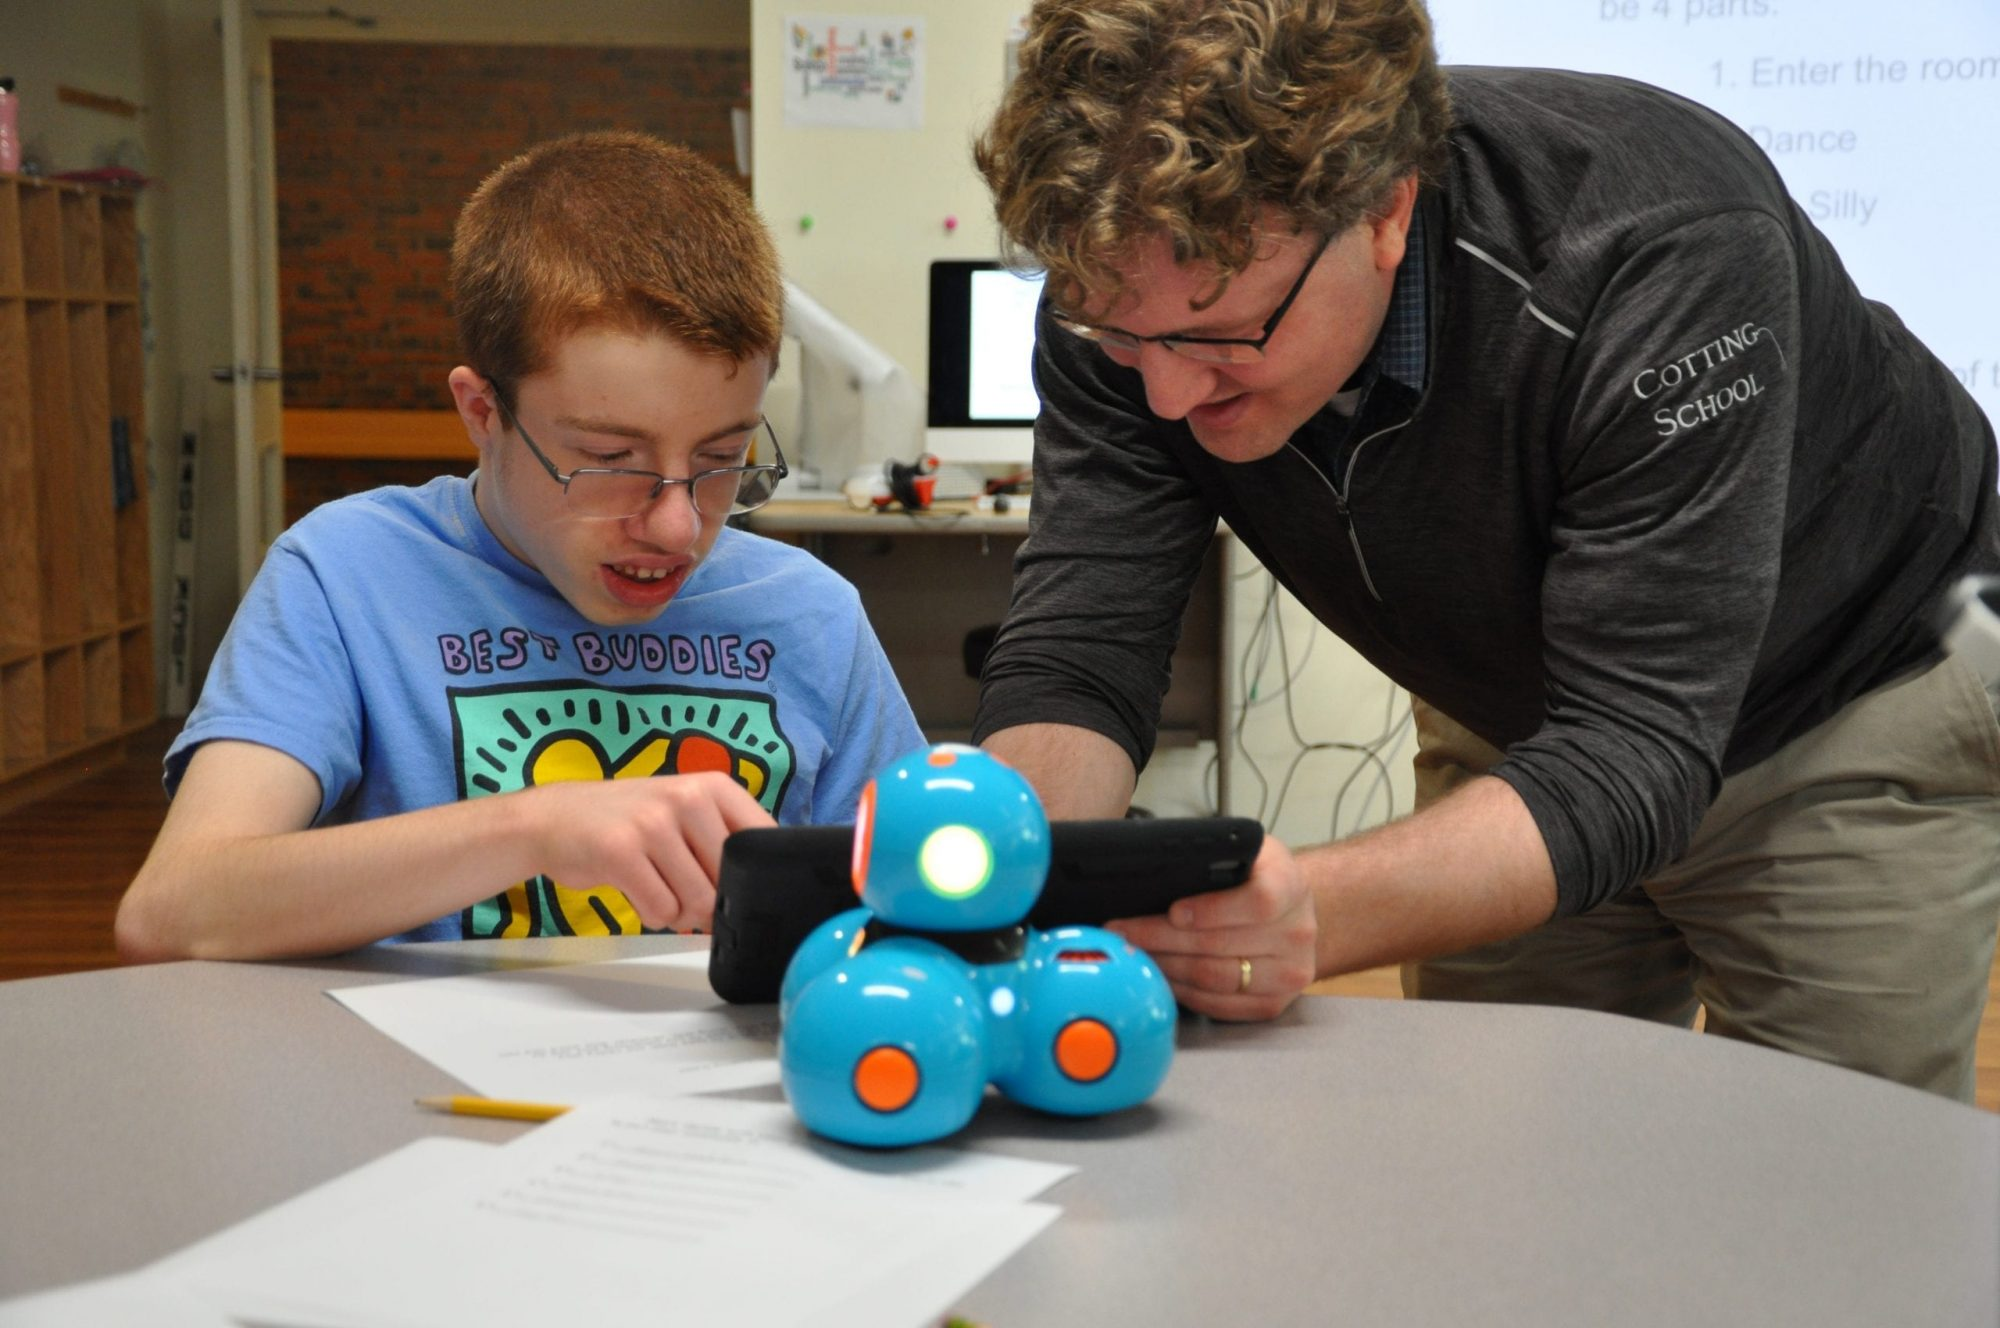 A Cotting School student and a teacher programming a robot